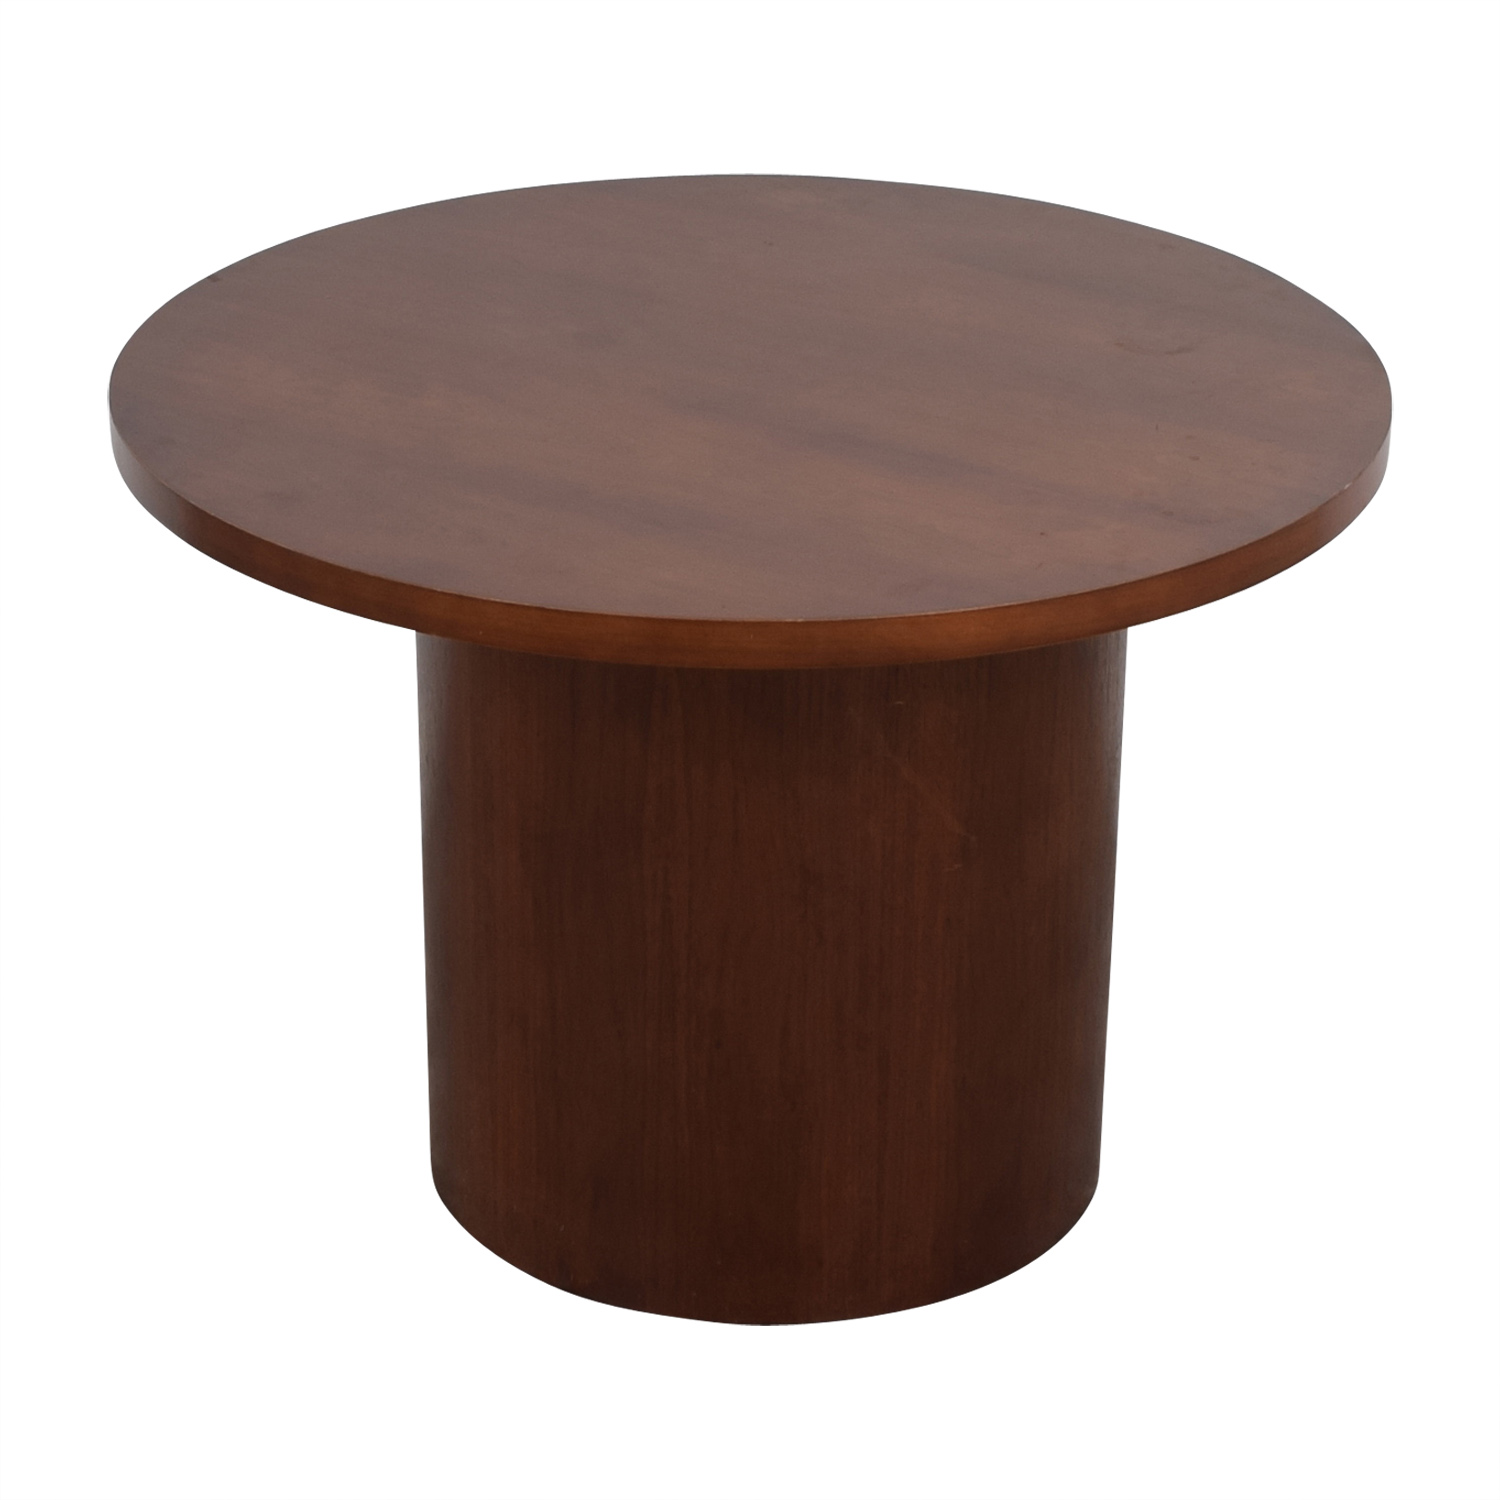 Round Wood Pedestal Table on sale